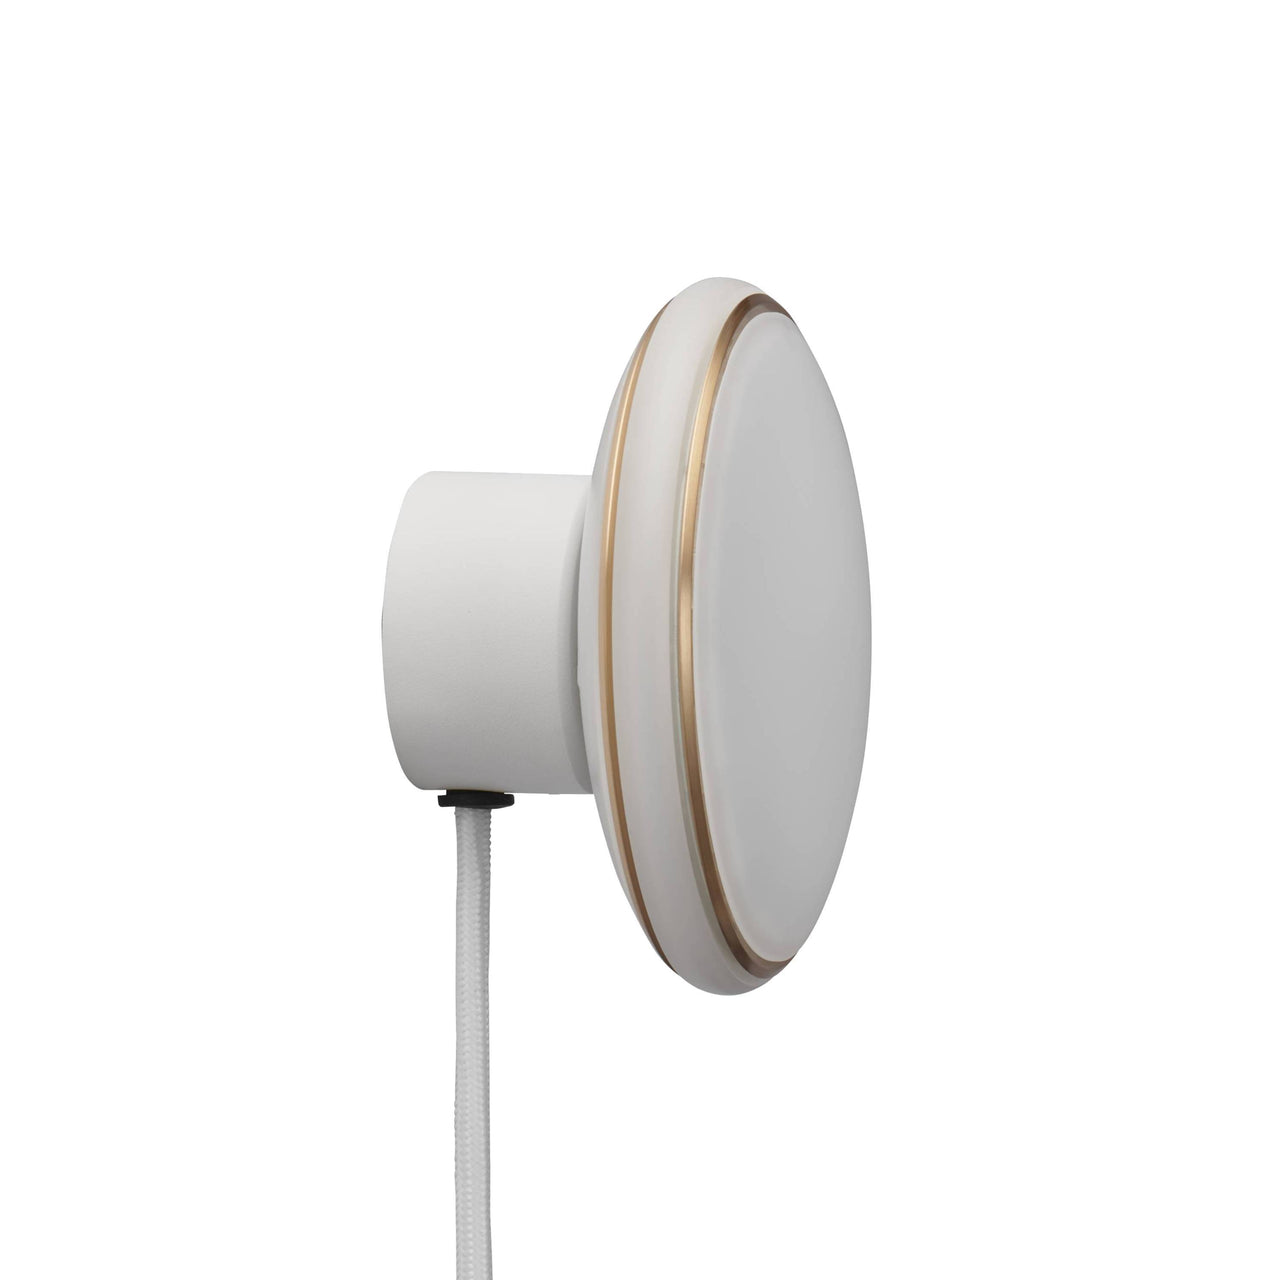 ØS1 Wall Lamp: white Brass + White + Without Node